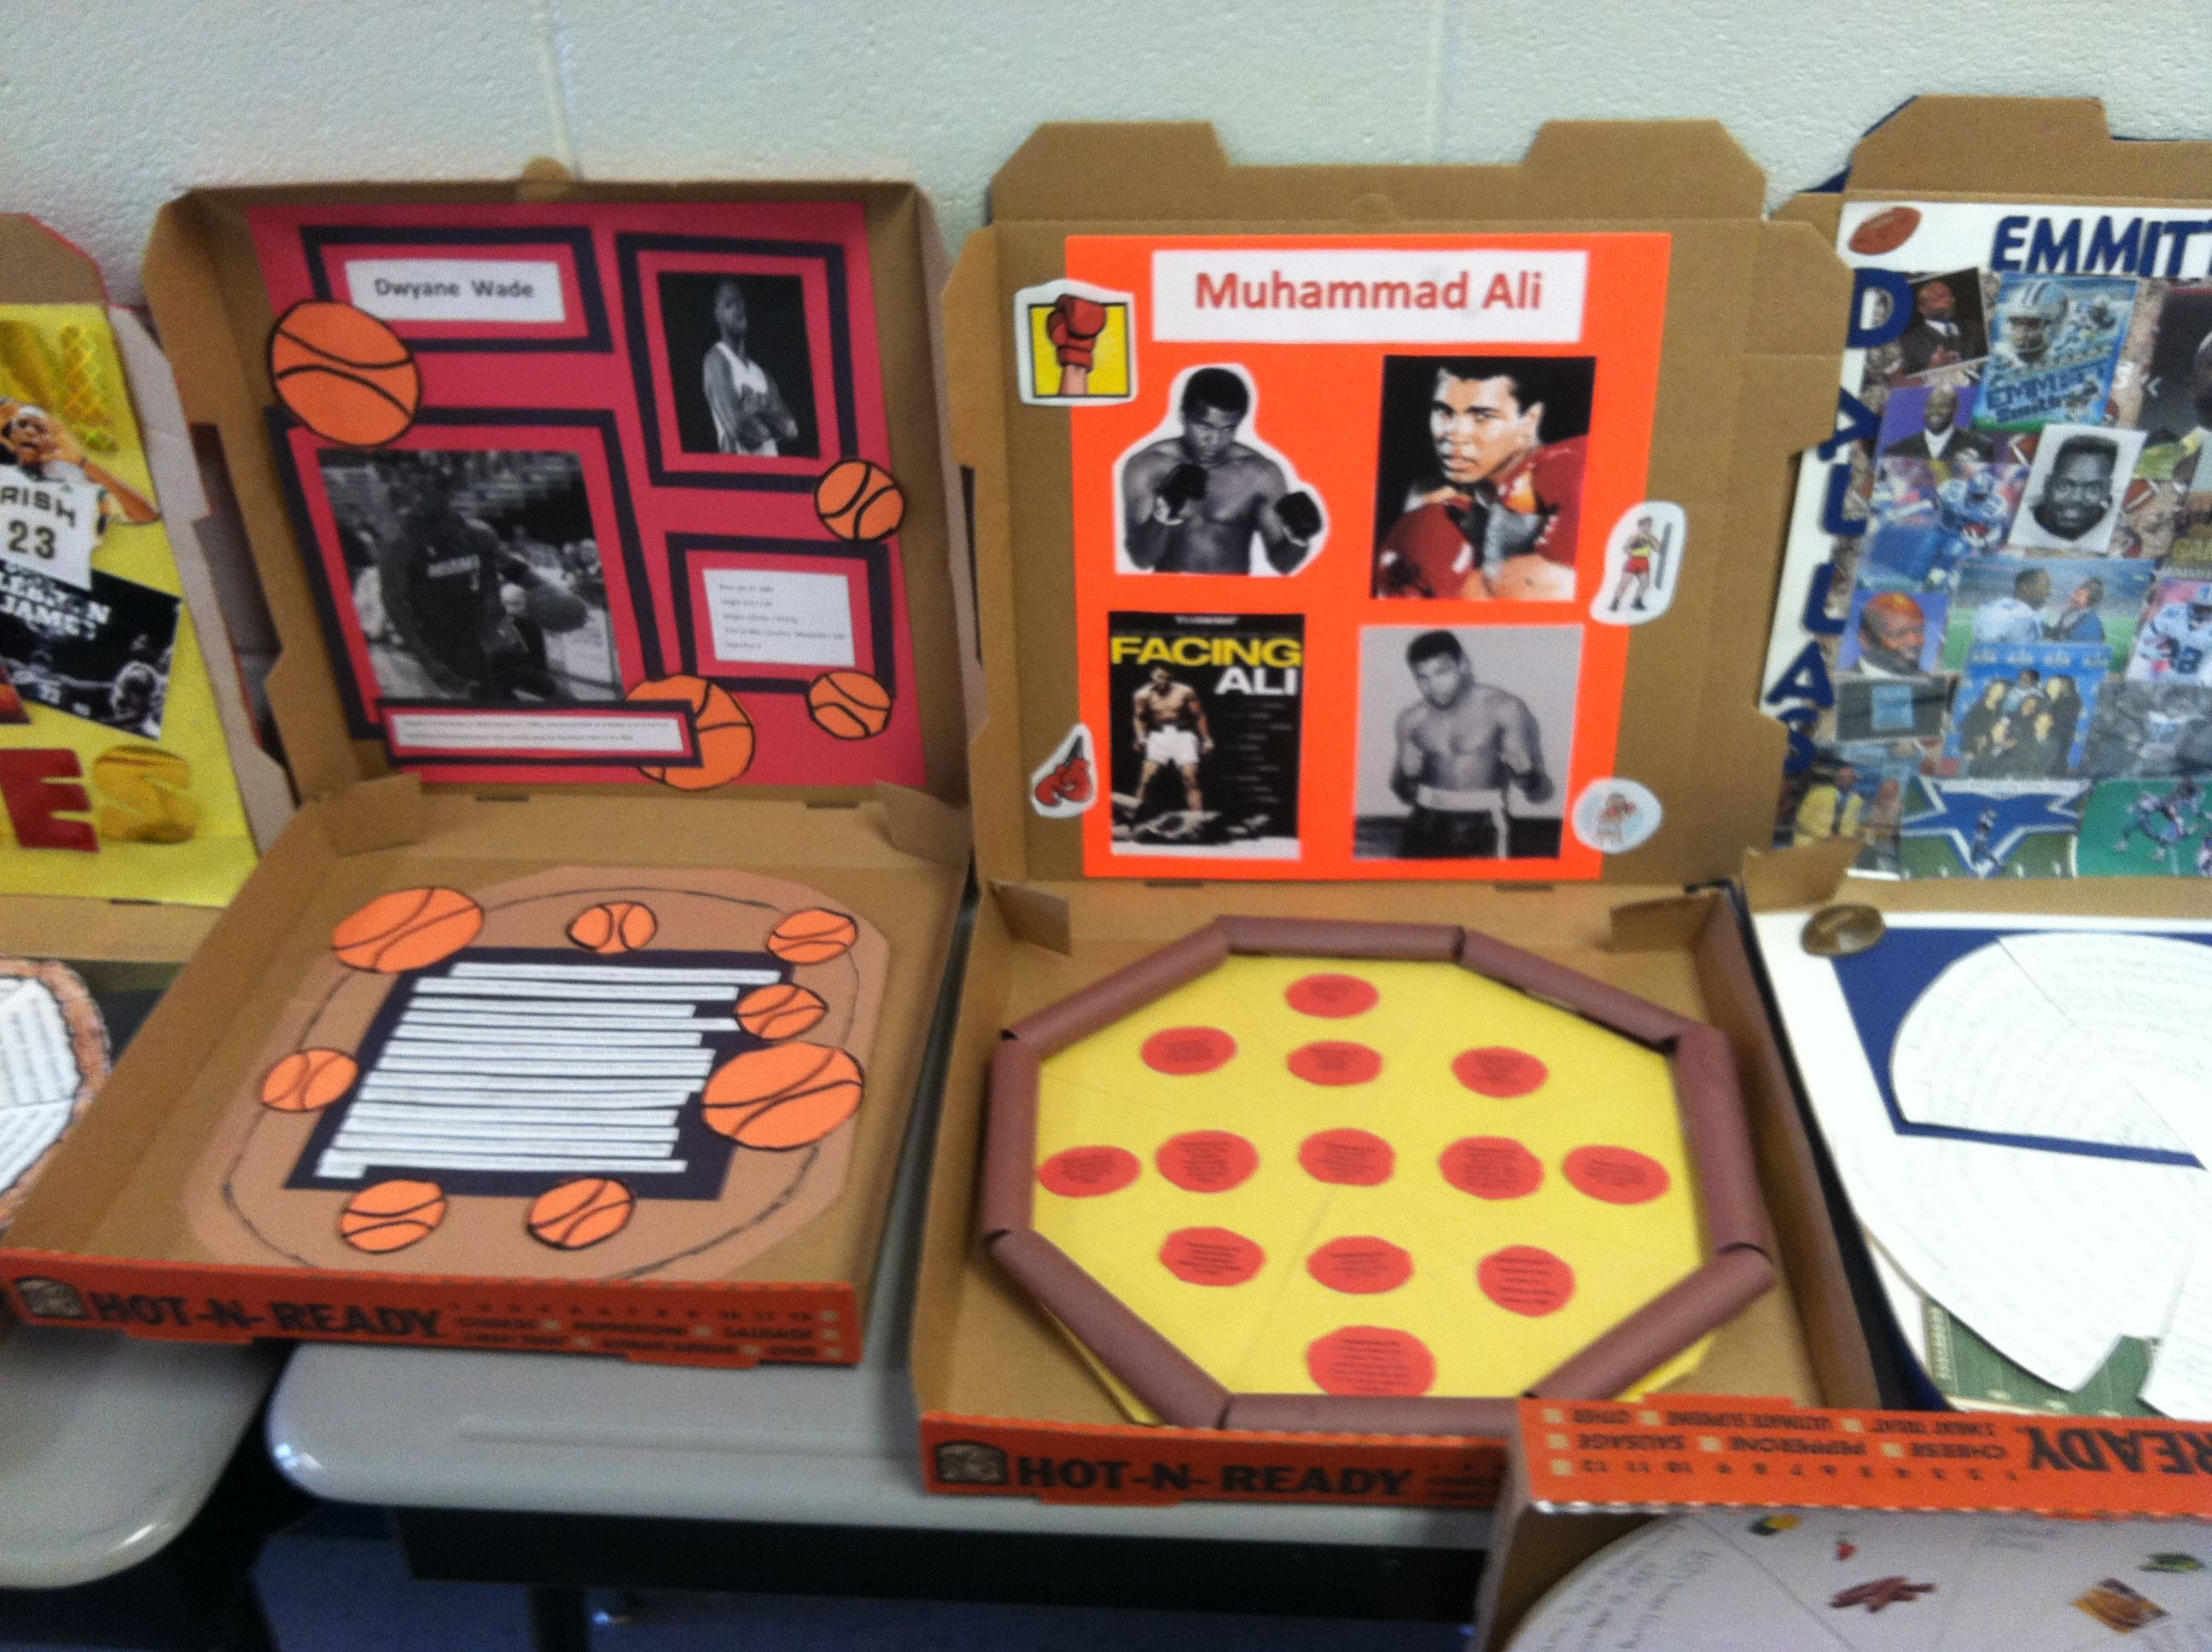 Kitchen Diorama Made Of Cereal Box: Miss Jones's Classroom